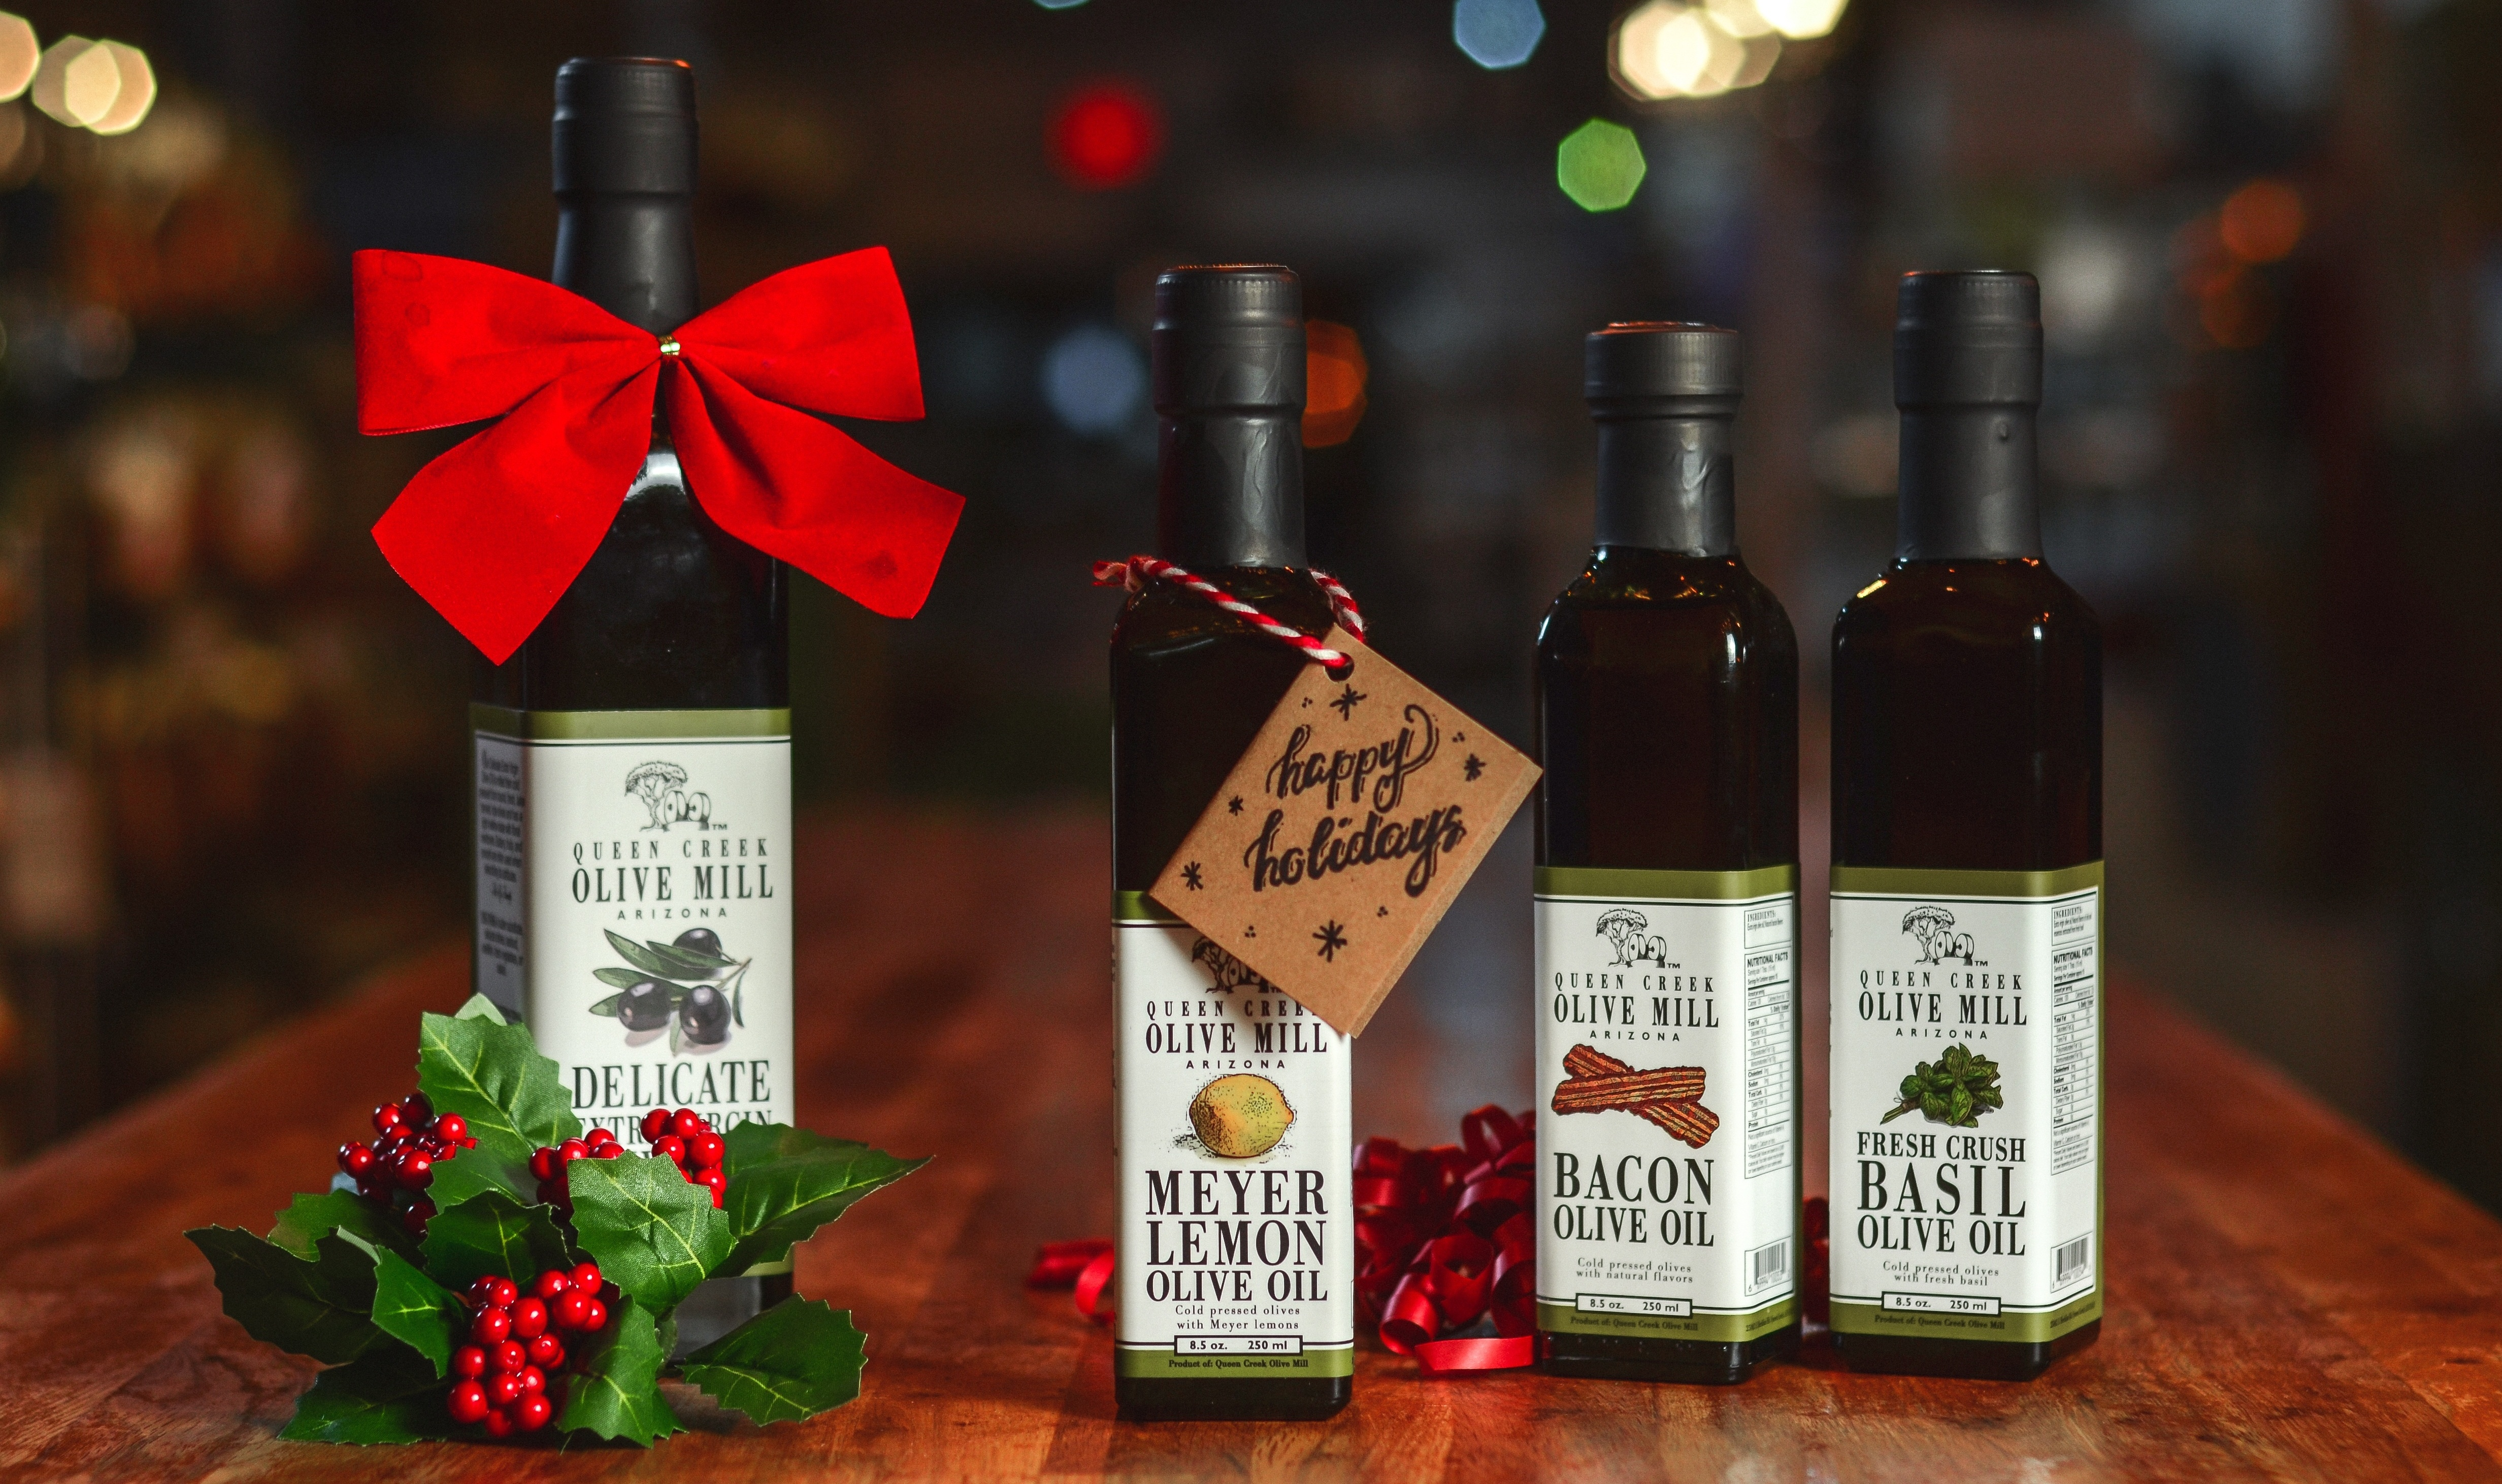 WHY OLIVE OIL IS THE PERFECT GIFT